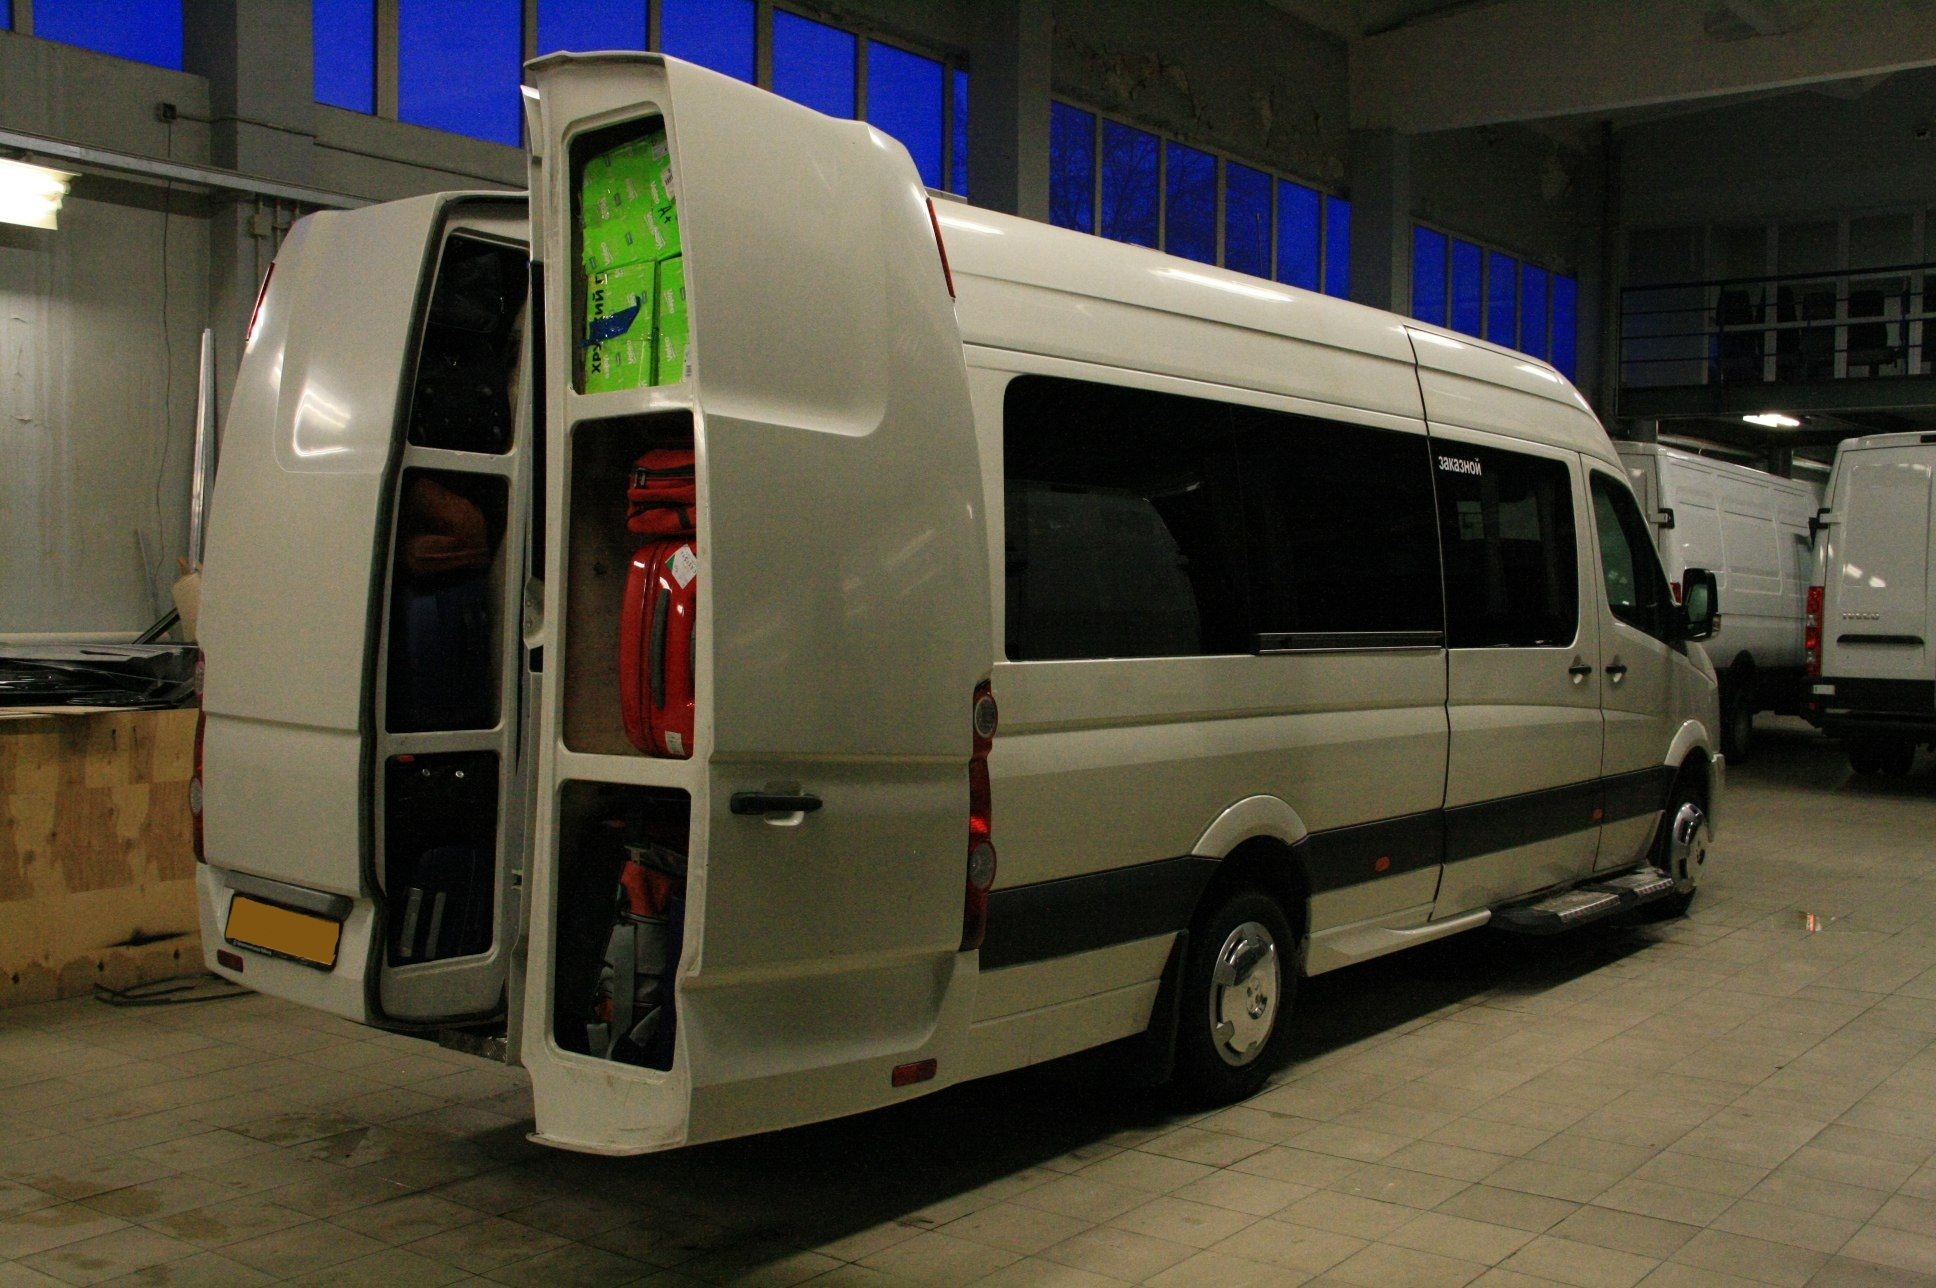 Reardoor Backpack Vw And Mb I Selling This Write Me Sprinter Van Crafter Wohnmobil Vw Crafter Wohnmobil